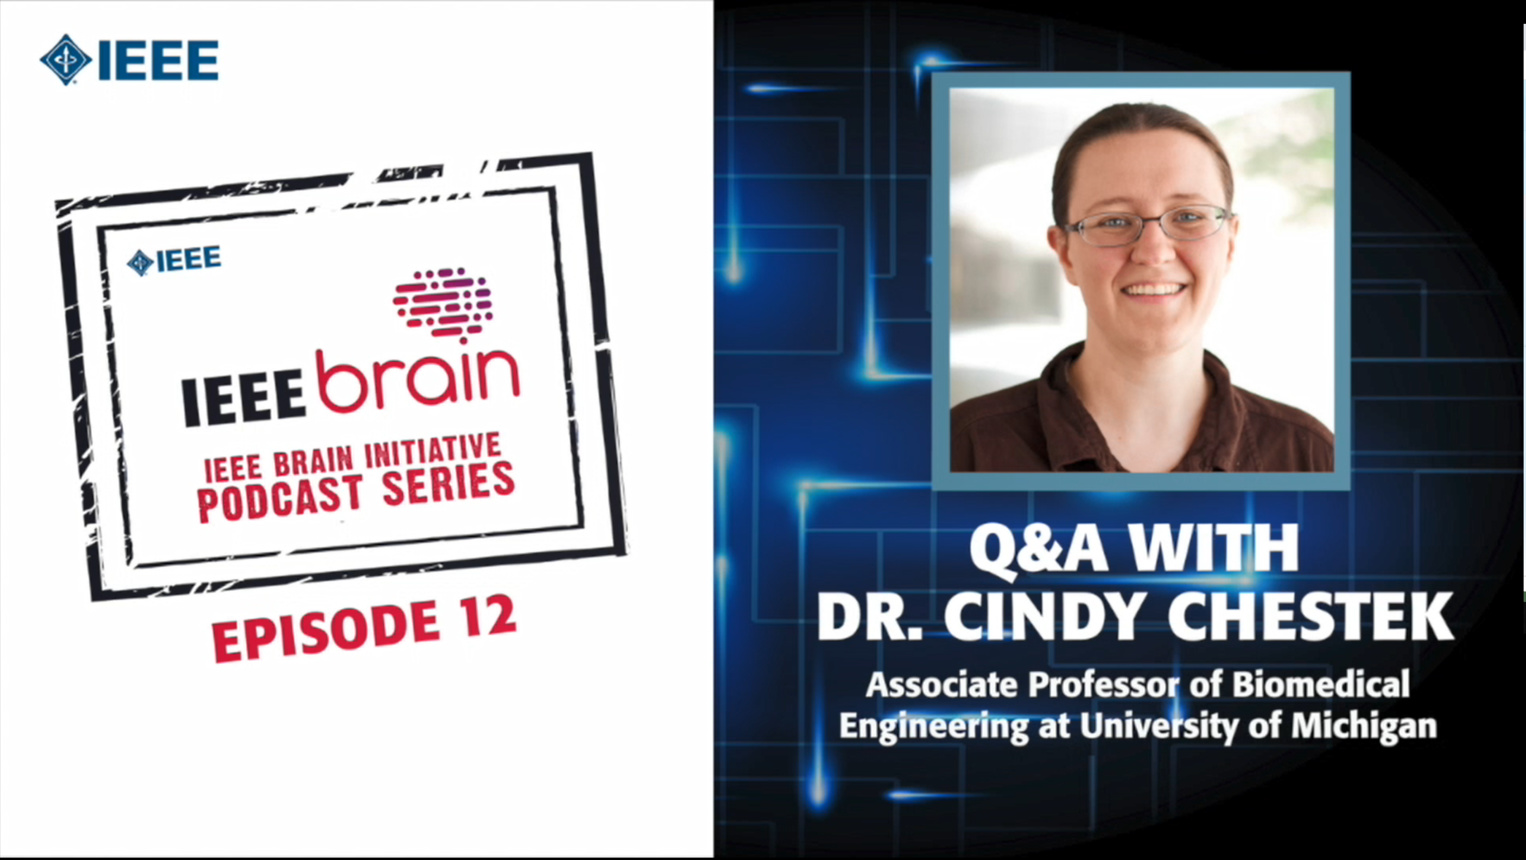 Q&A with Cindy Chestek: IEEE Brain Podcast, Episode 12